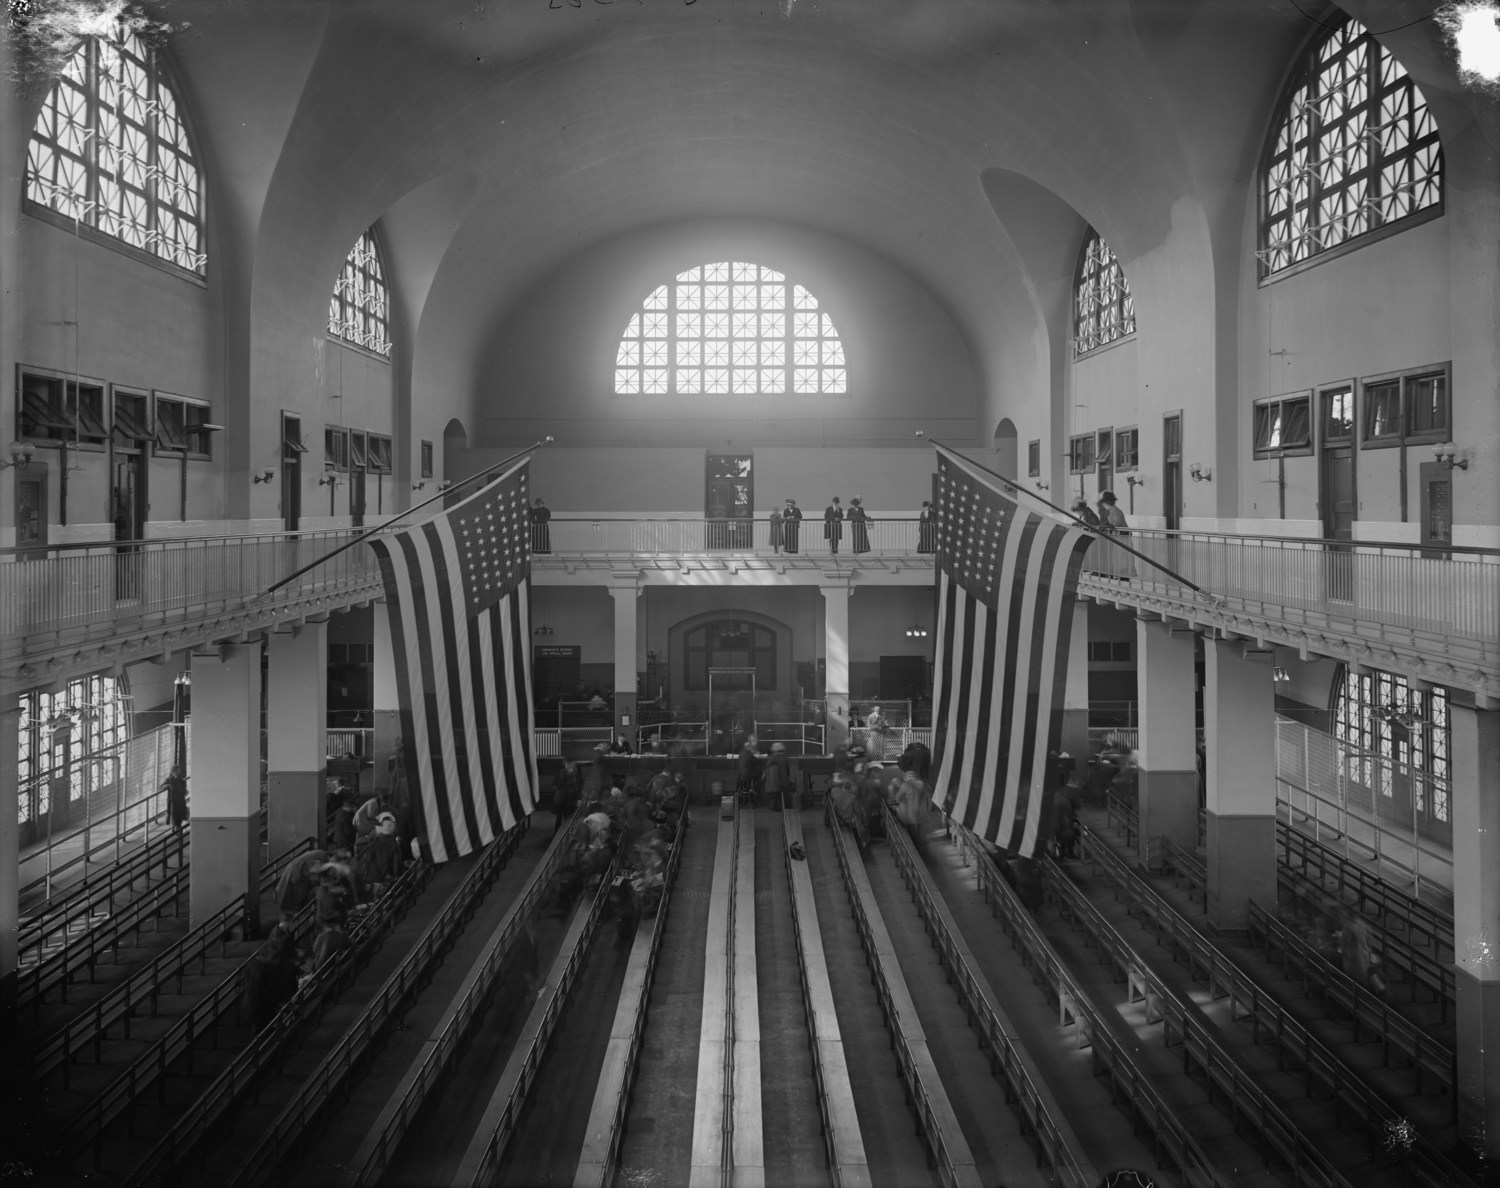 Ellis Island Main Processing Room (circa 1912)